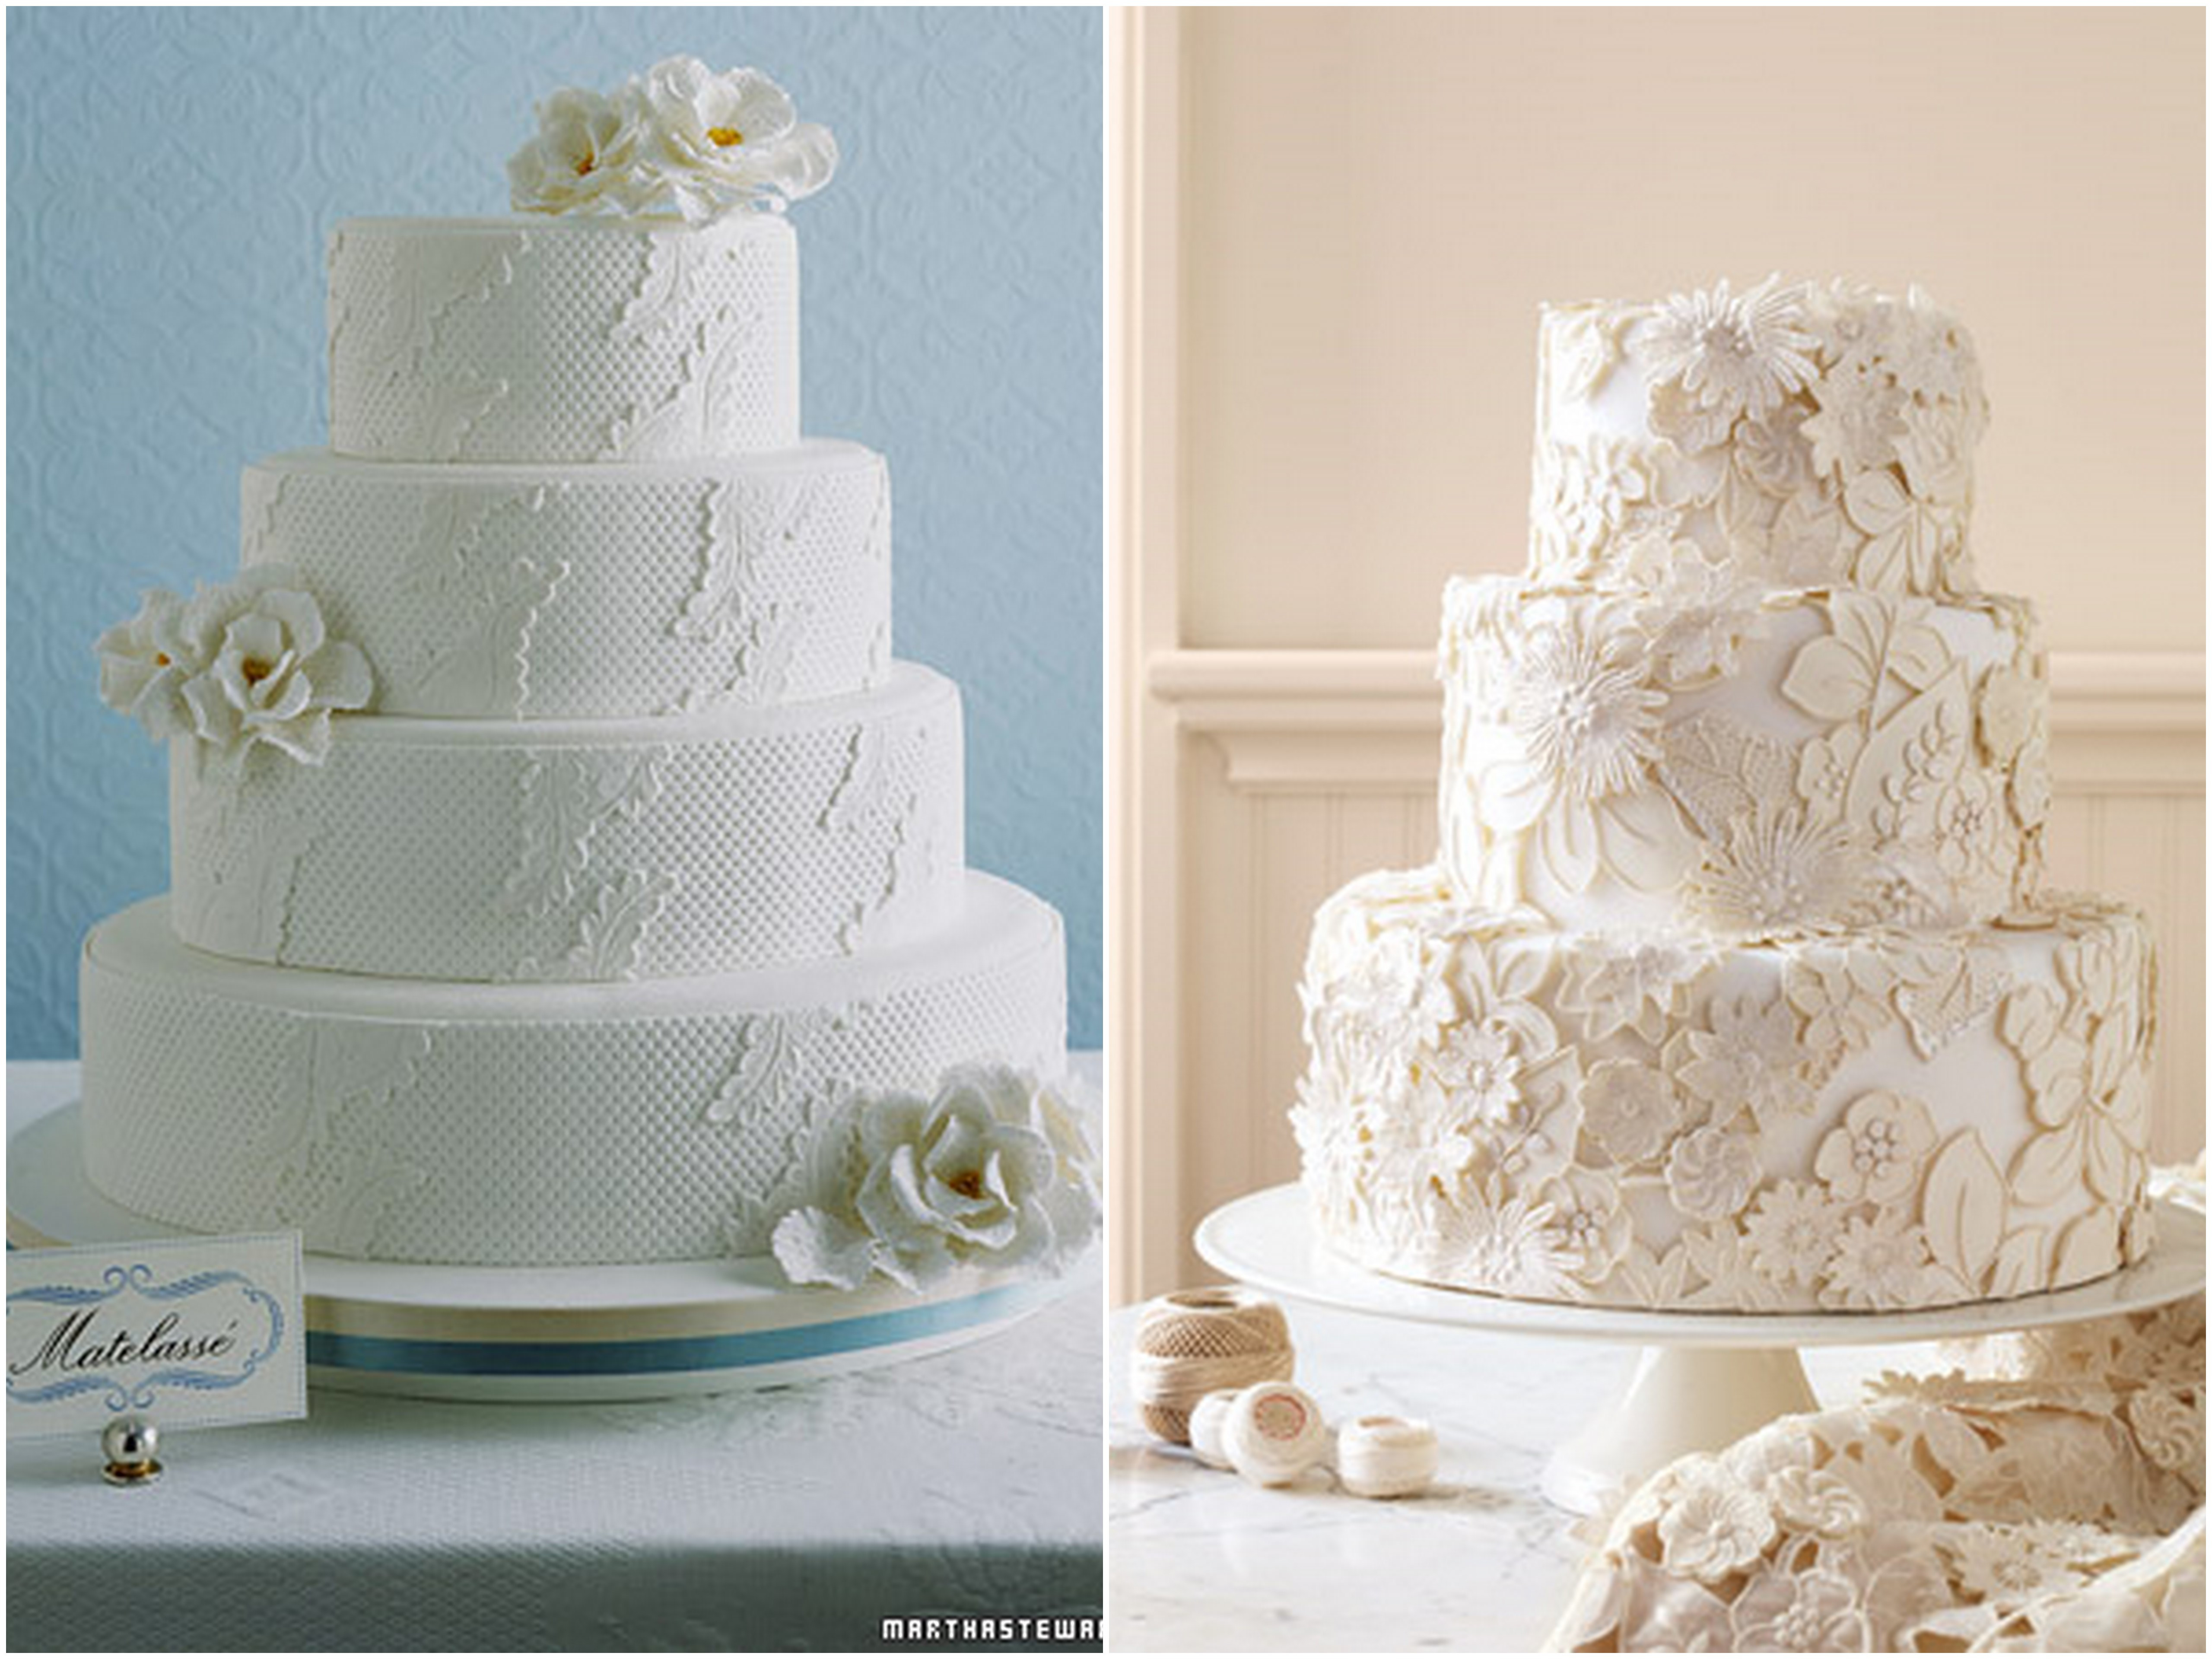 Wedding Cakes With Fondant  Inspired by the Great Cake Debate Fondant Vs Buttercream